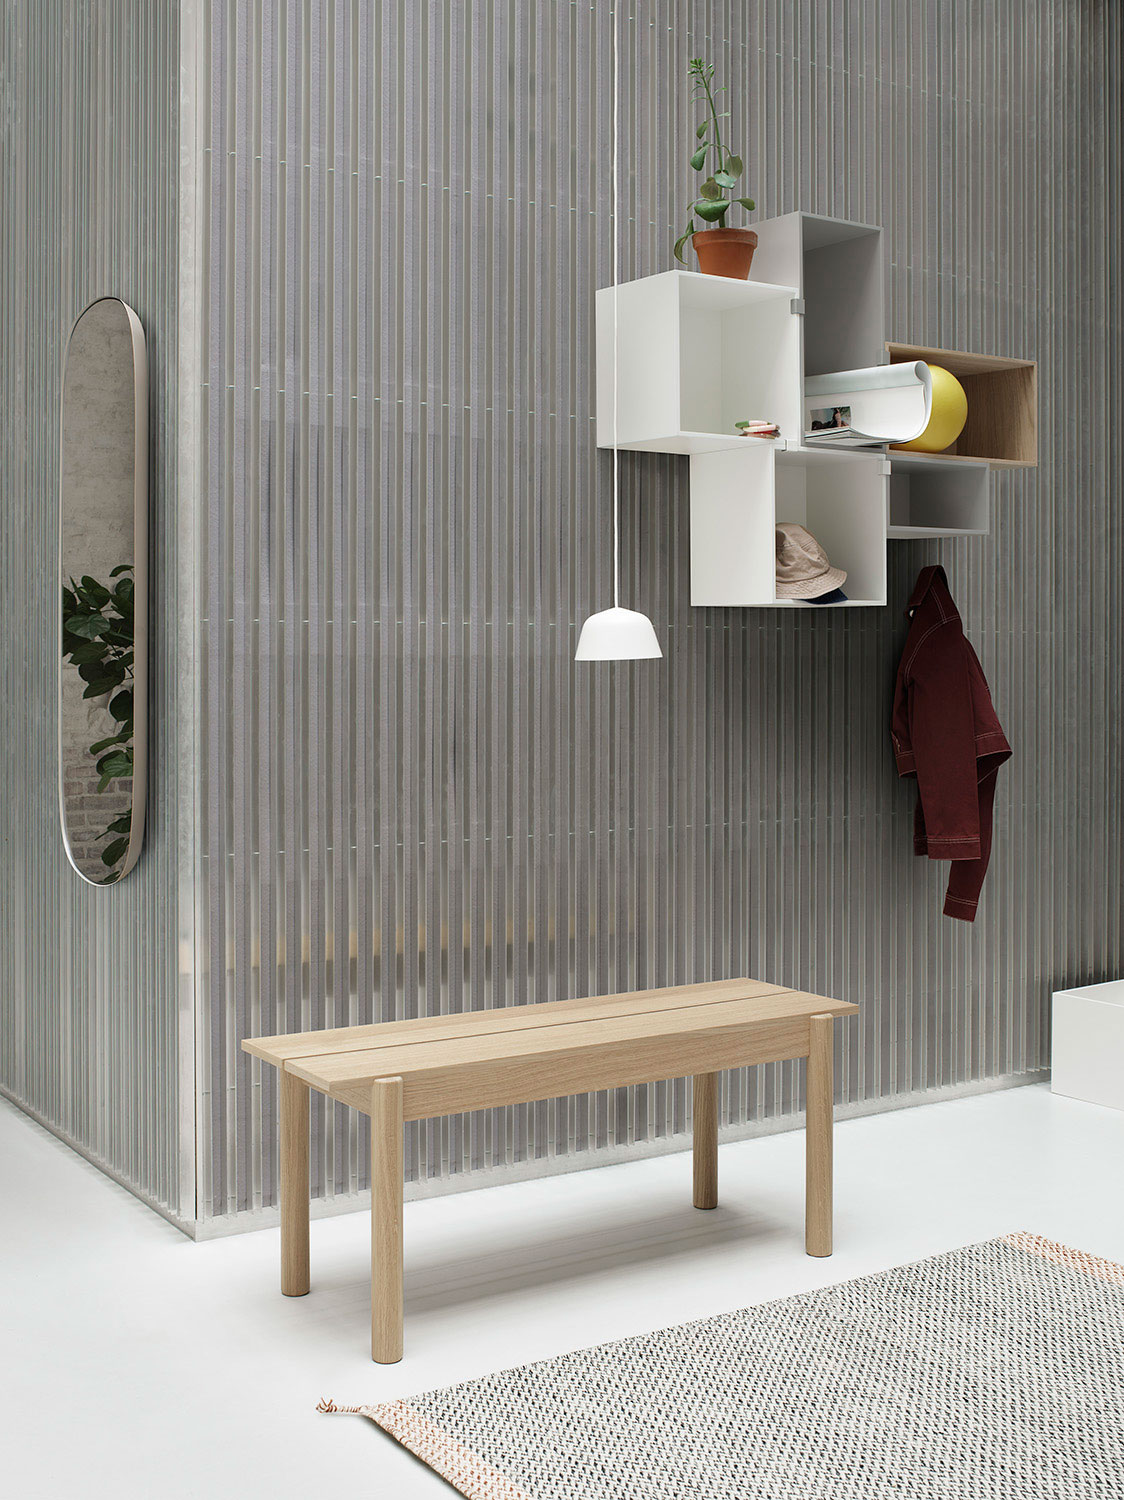 Muuto Linear Wood Bench with Mini Stacked Storage